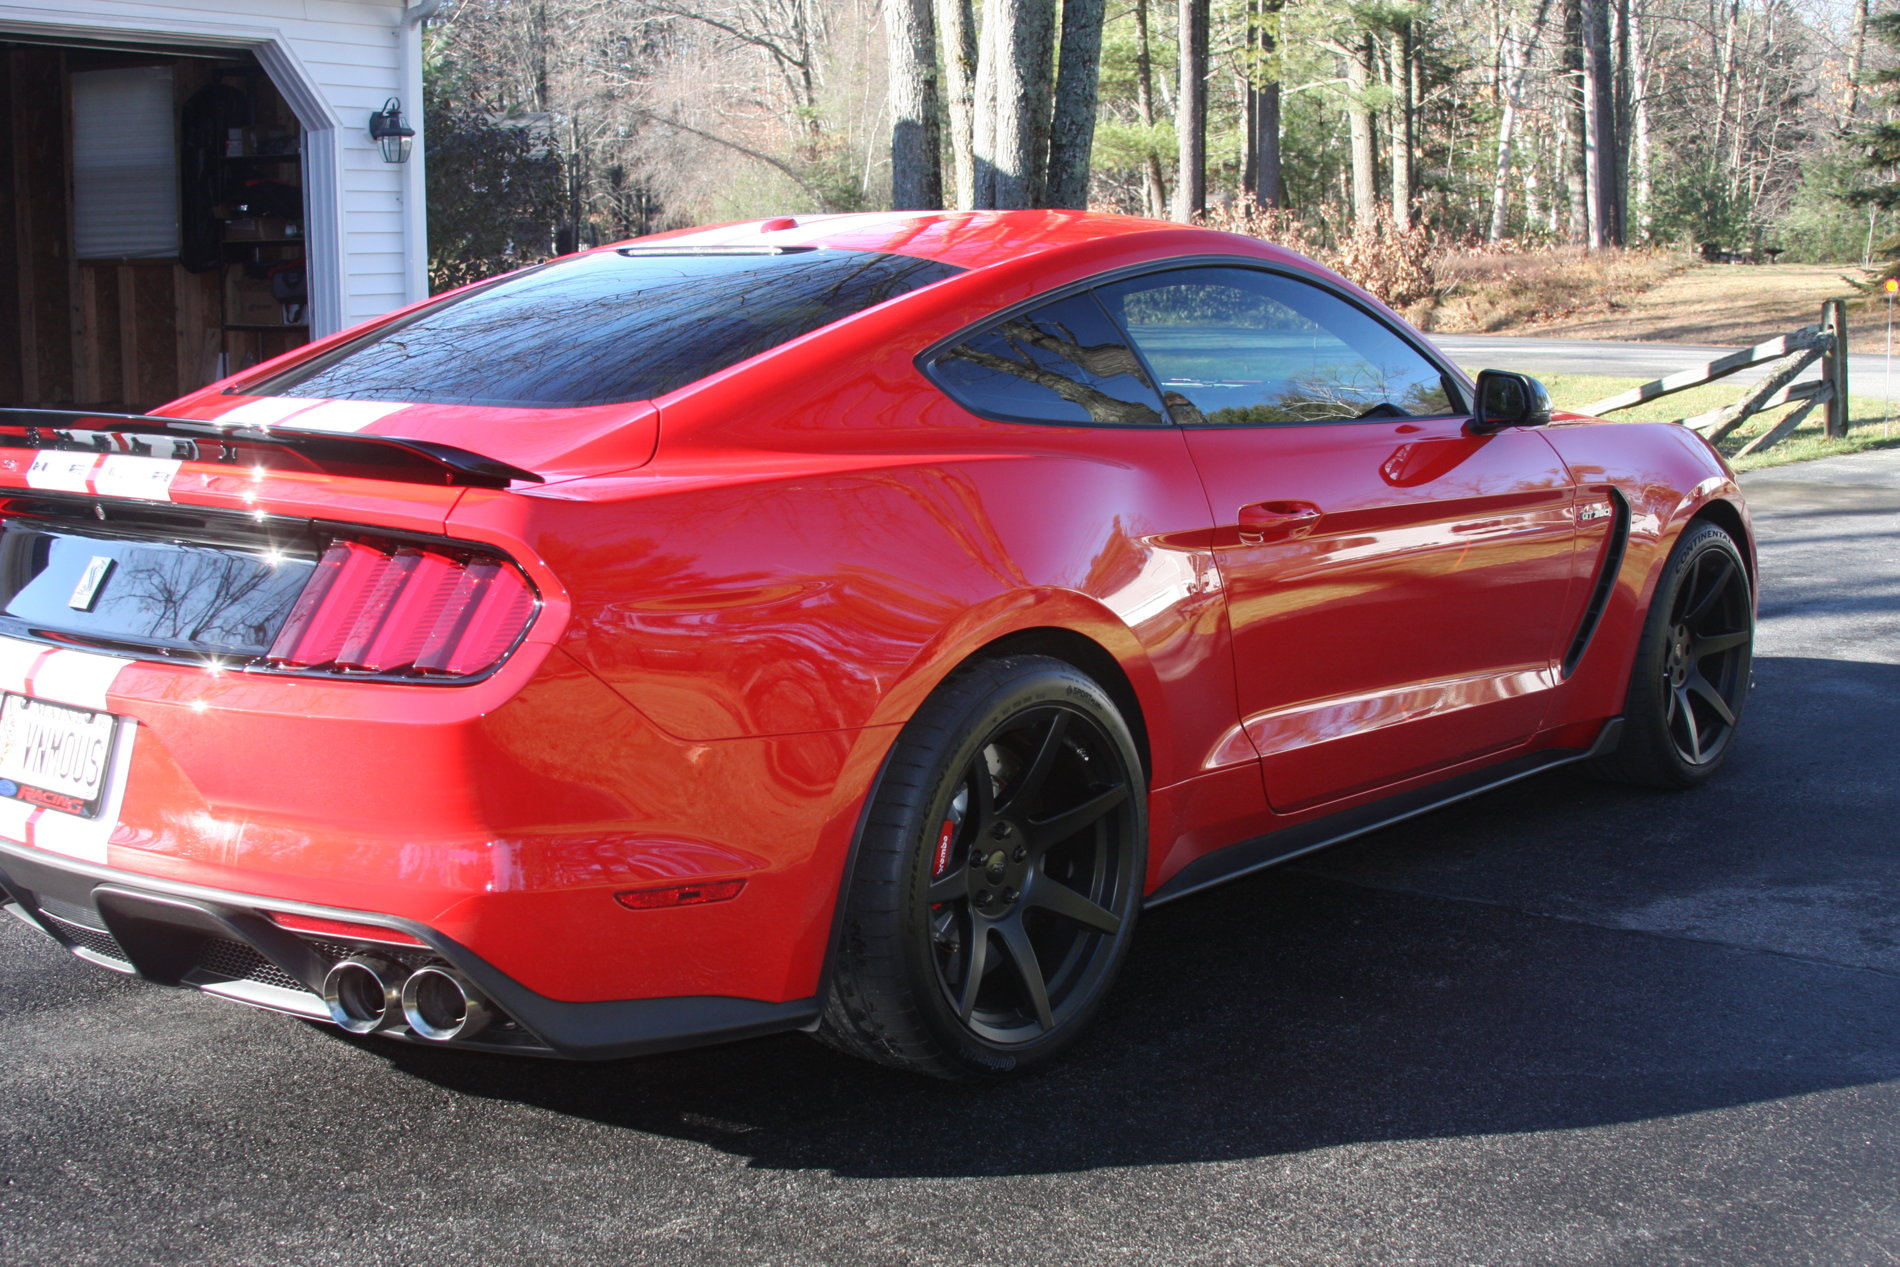 Maine - 2016 Shelby GT350 for sale | 2015+ S550 Mustang ...